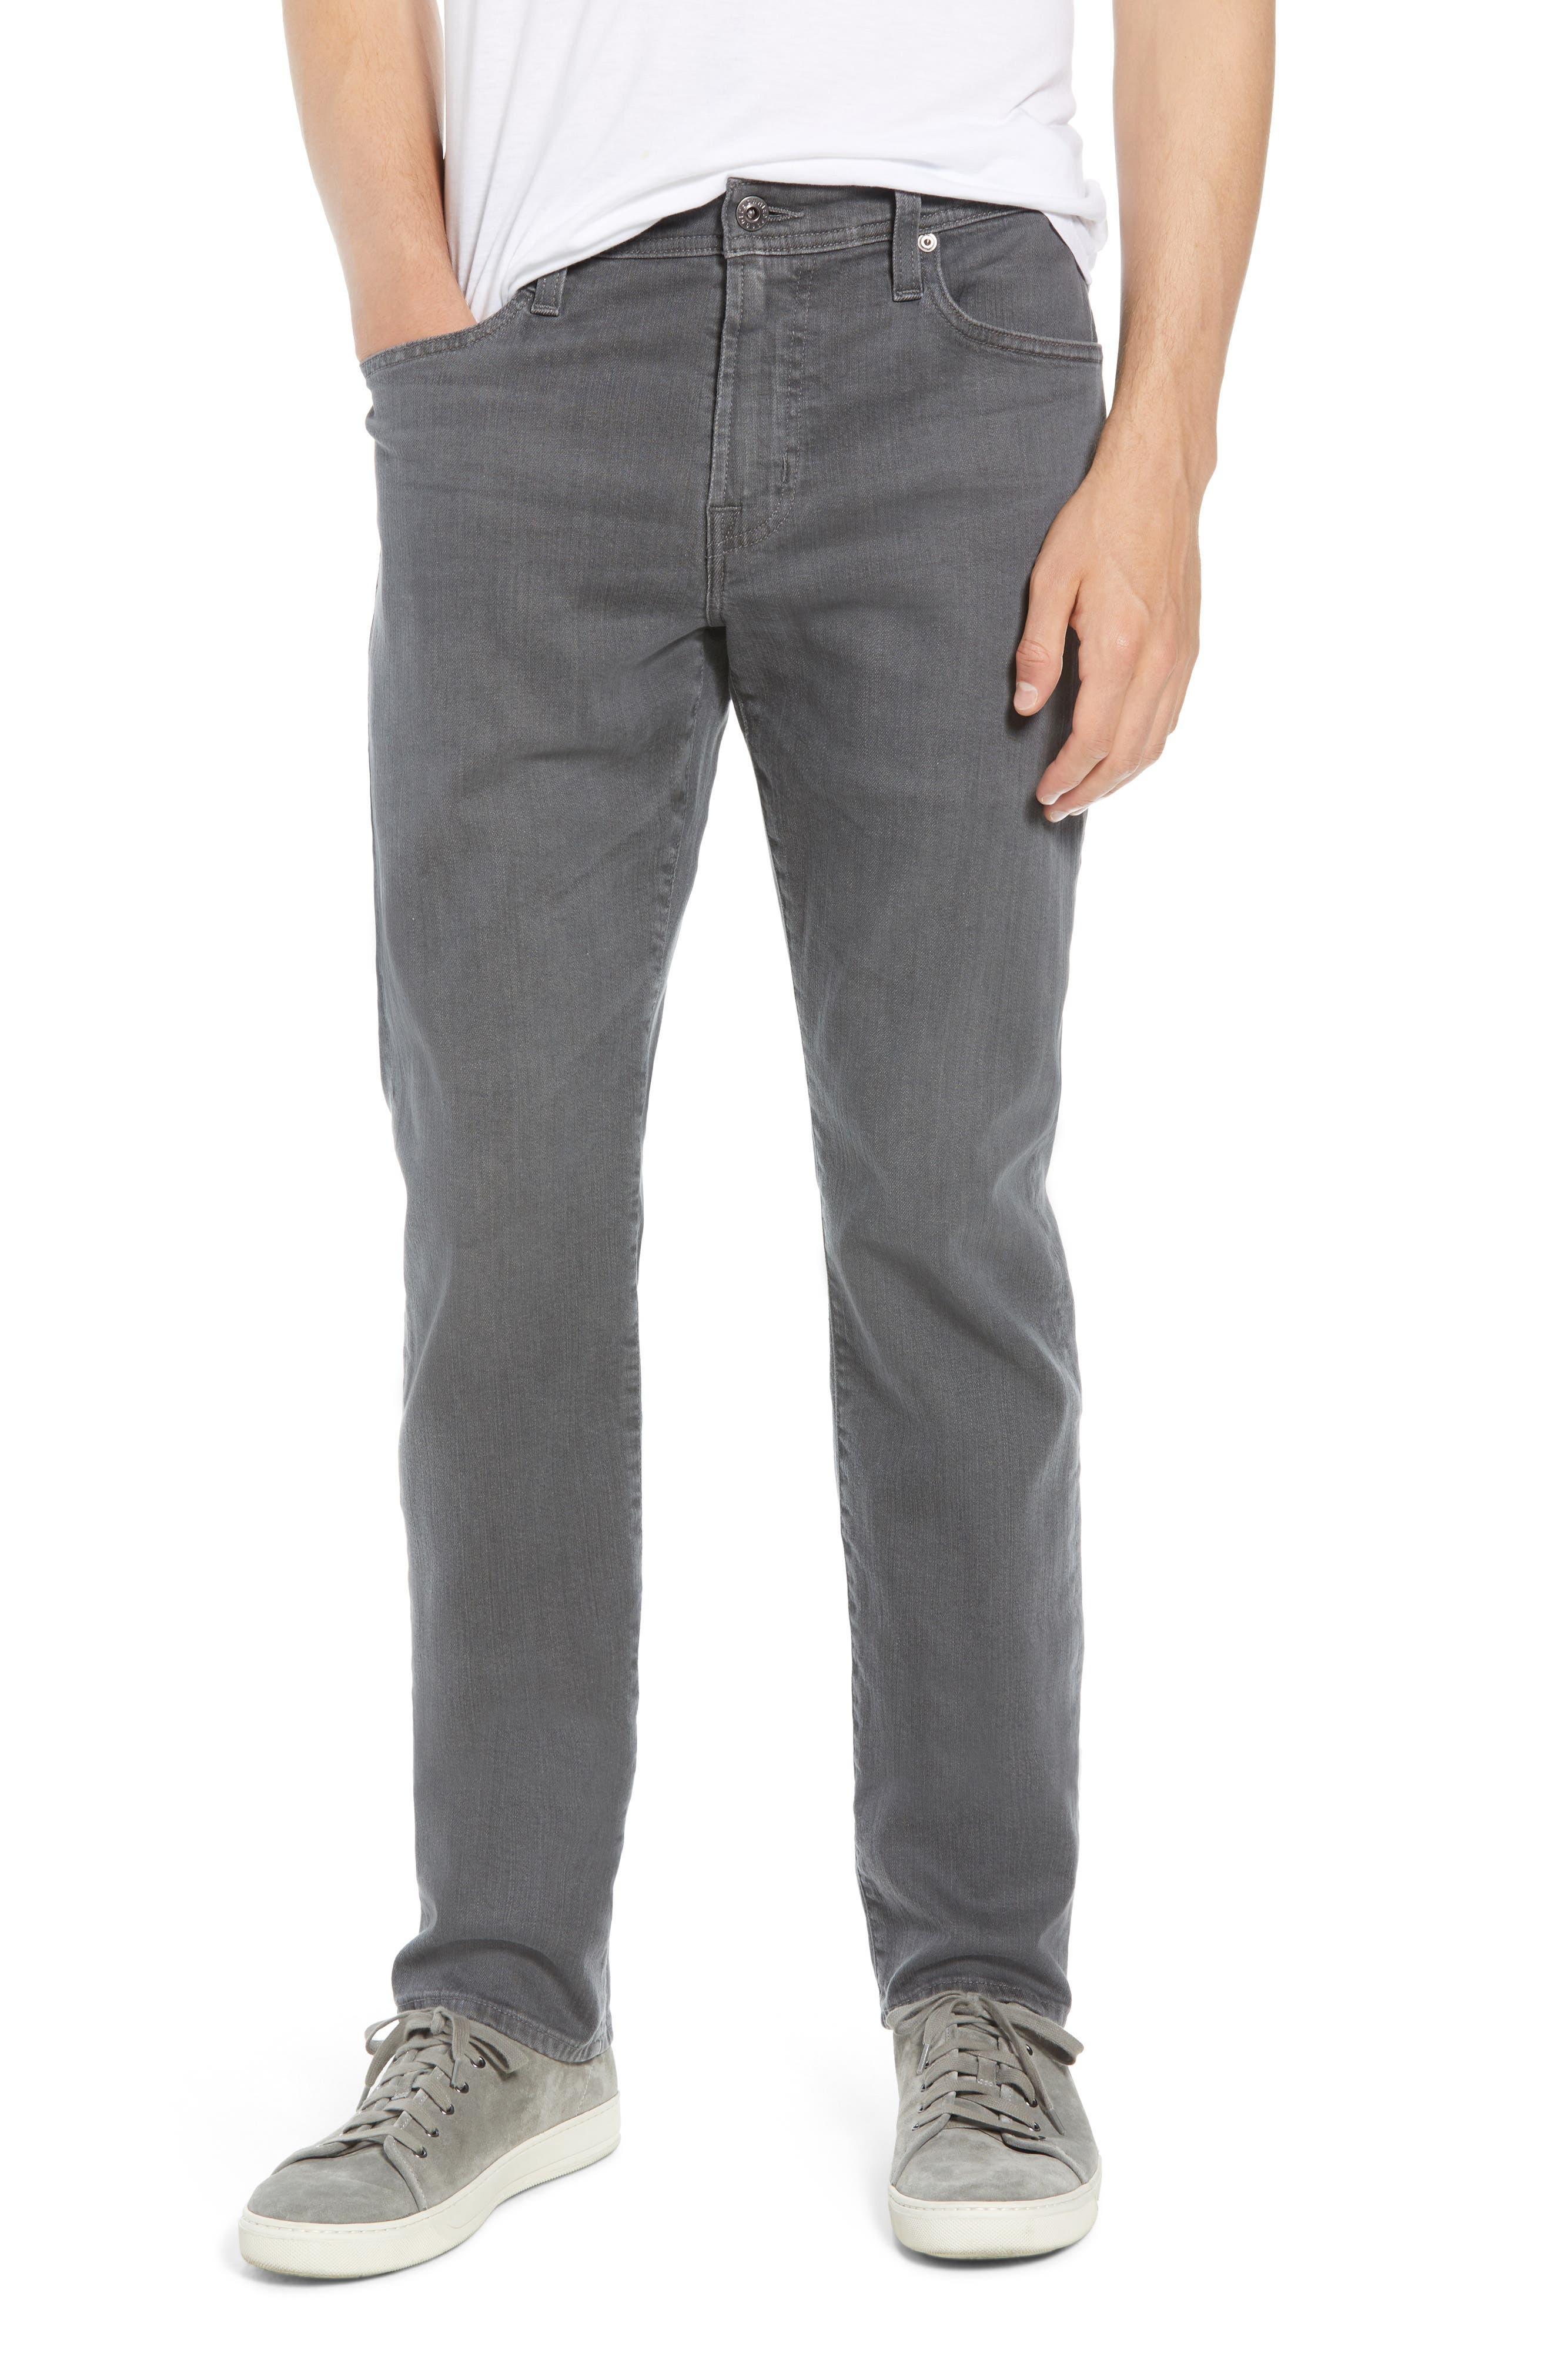 Everett Slim Straight Leg Jeans,                             Main thumbnail 1, color,                             PASSENGER